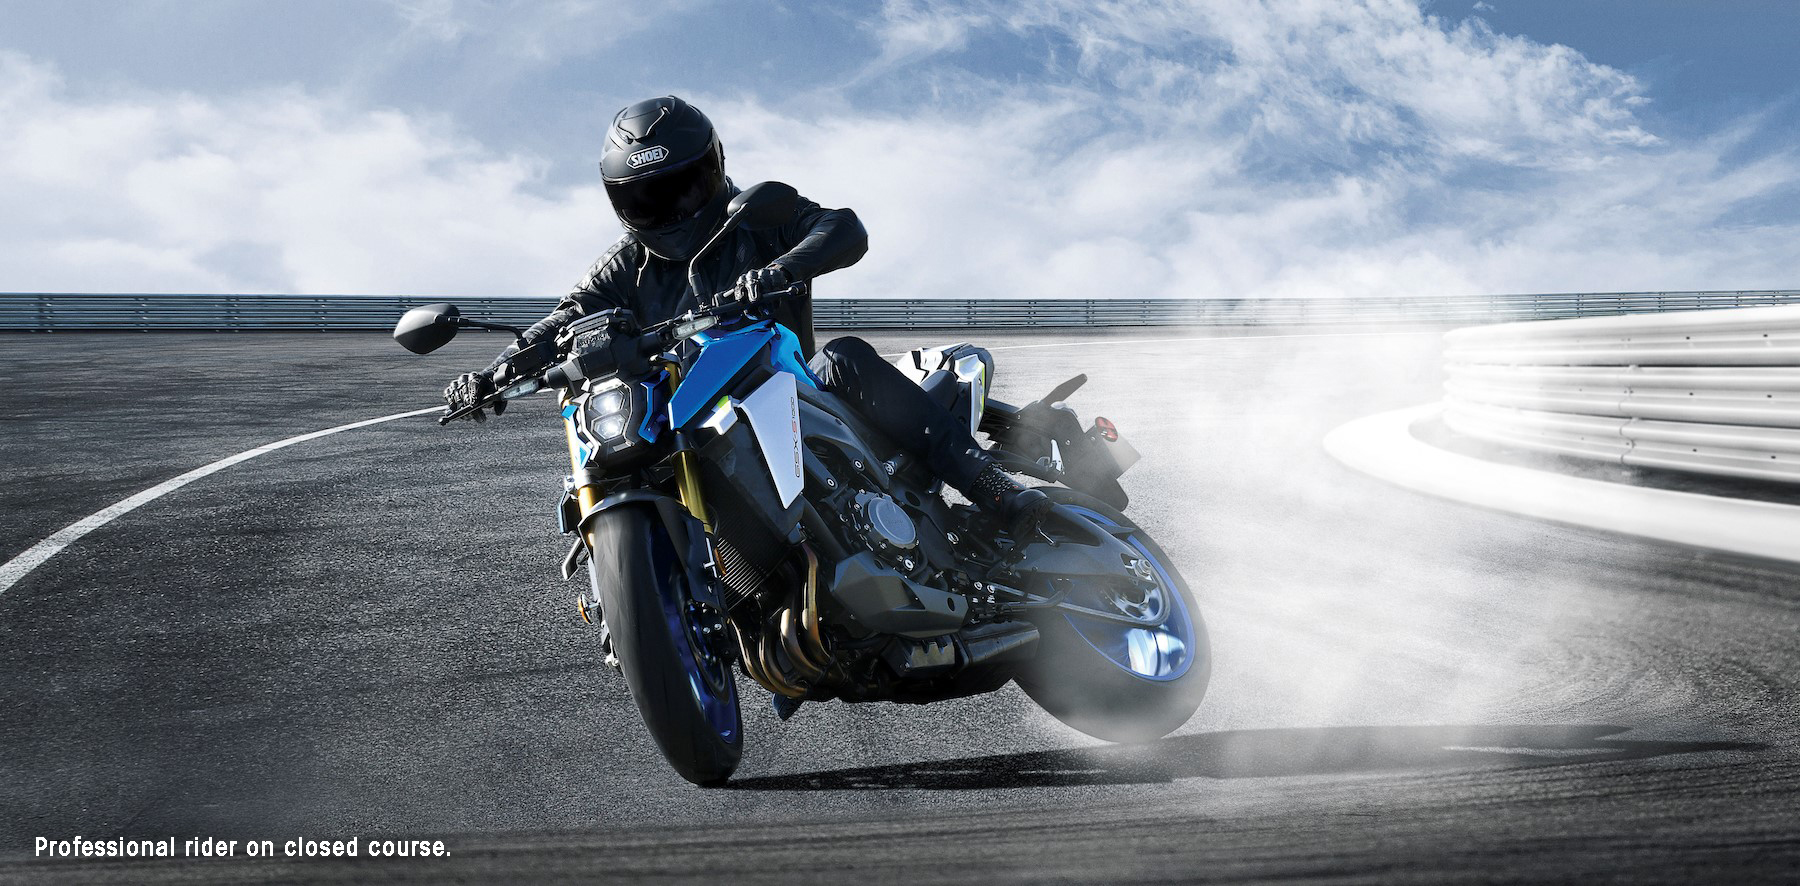 2022 Suzuki GSX-S1000 delivers the perfect balance of performance, agility, and style